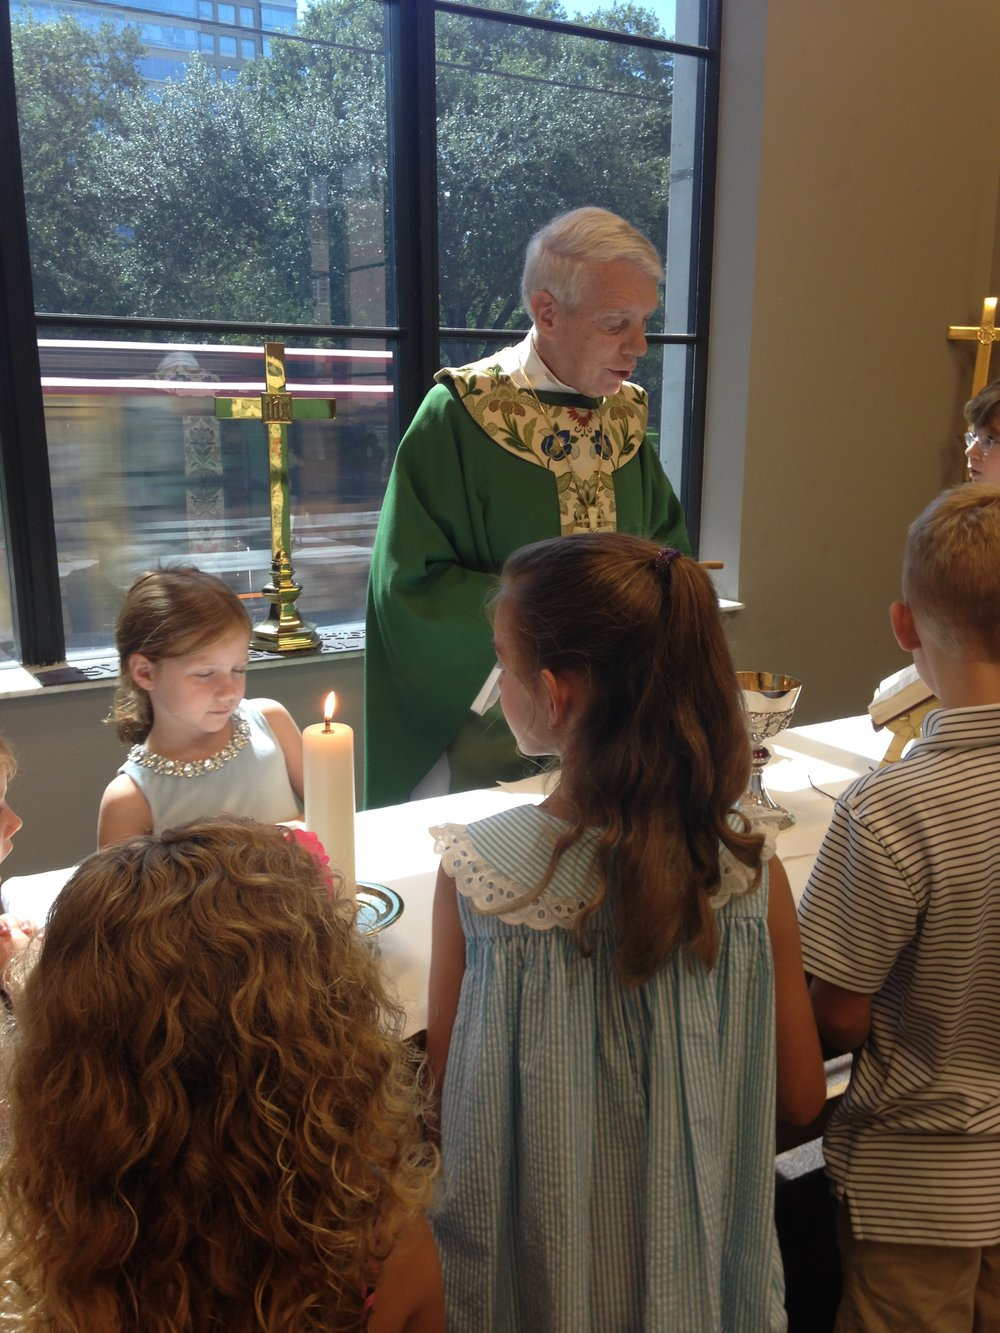 Children's Eucharist - 2nd Sundays